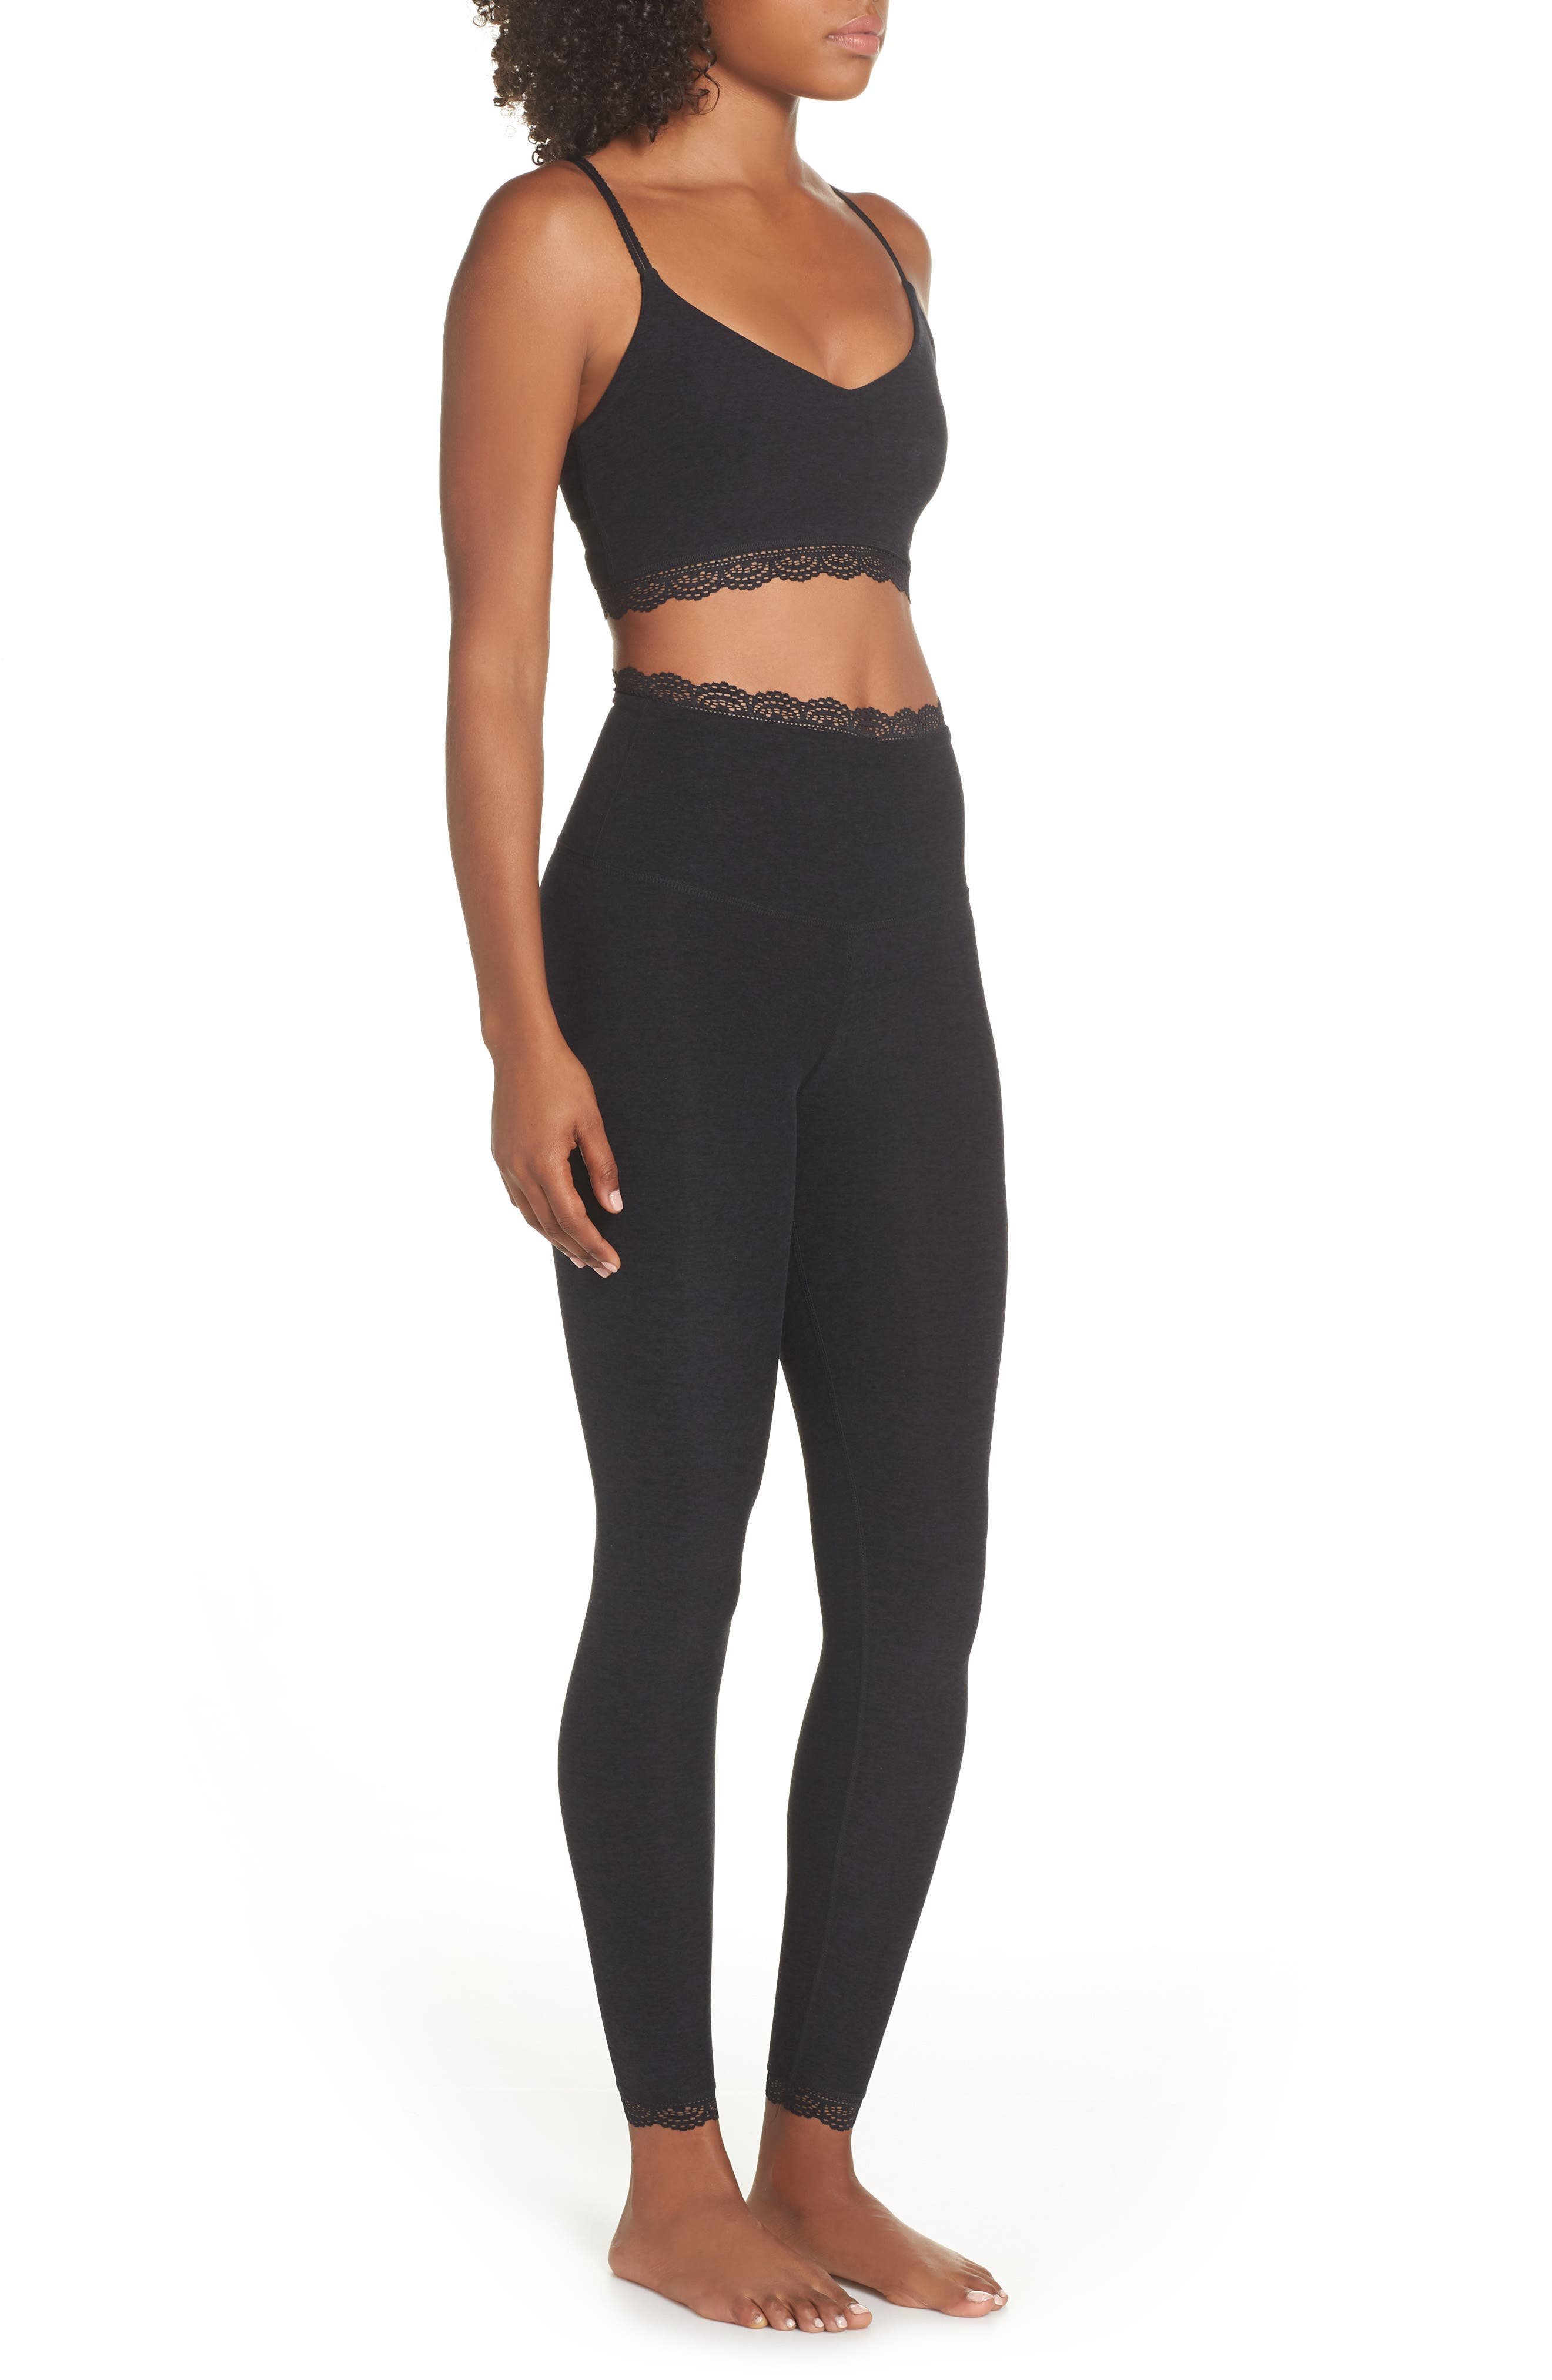 BEYOND YOGA,                             All For Lace Leggings,                             Alternate thumbnail 10, color,                             003